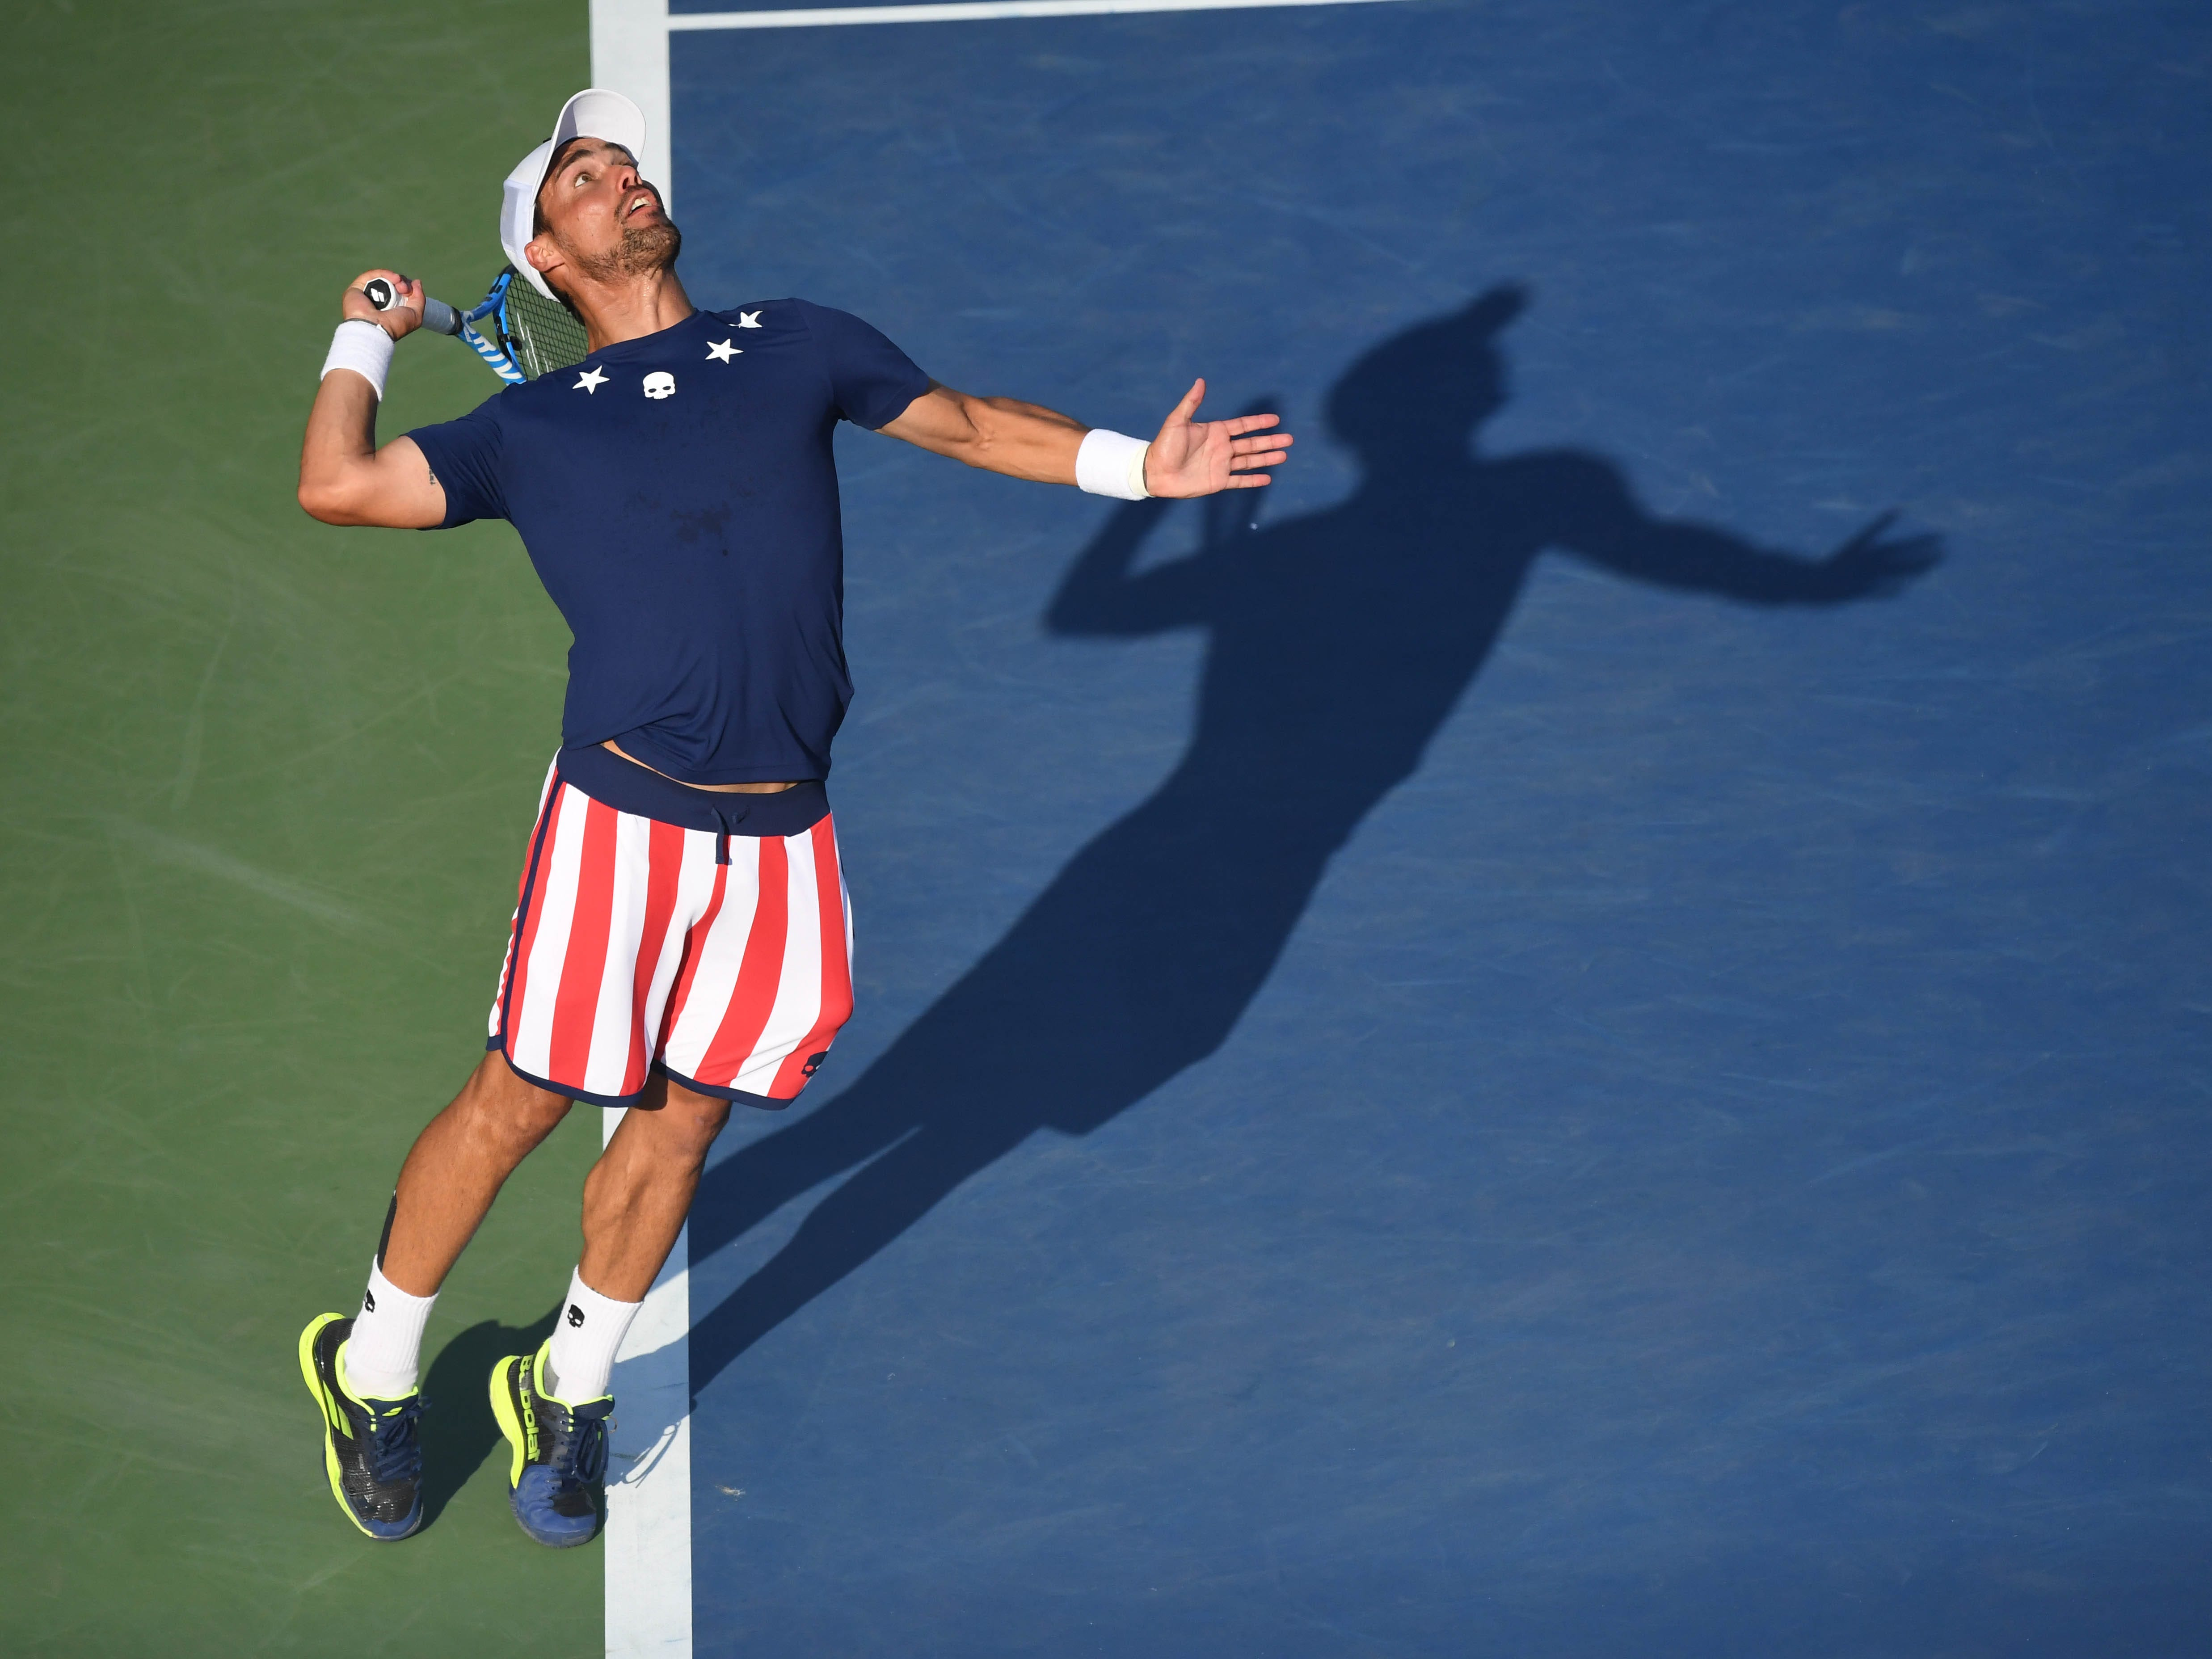 Fabio Fognini of Italy, decked out in stars and stripes, serves to Michael Mmoh of the USA. Fognini won 4-6, 6-2, 6-4, 7-6(4).